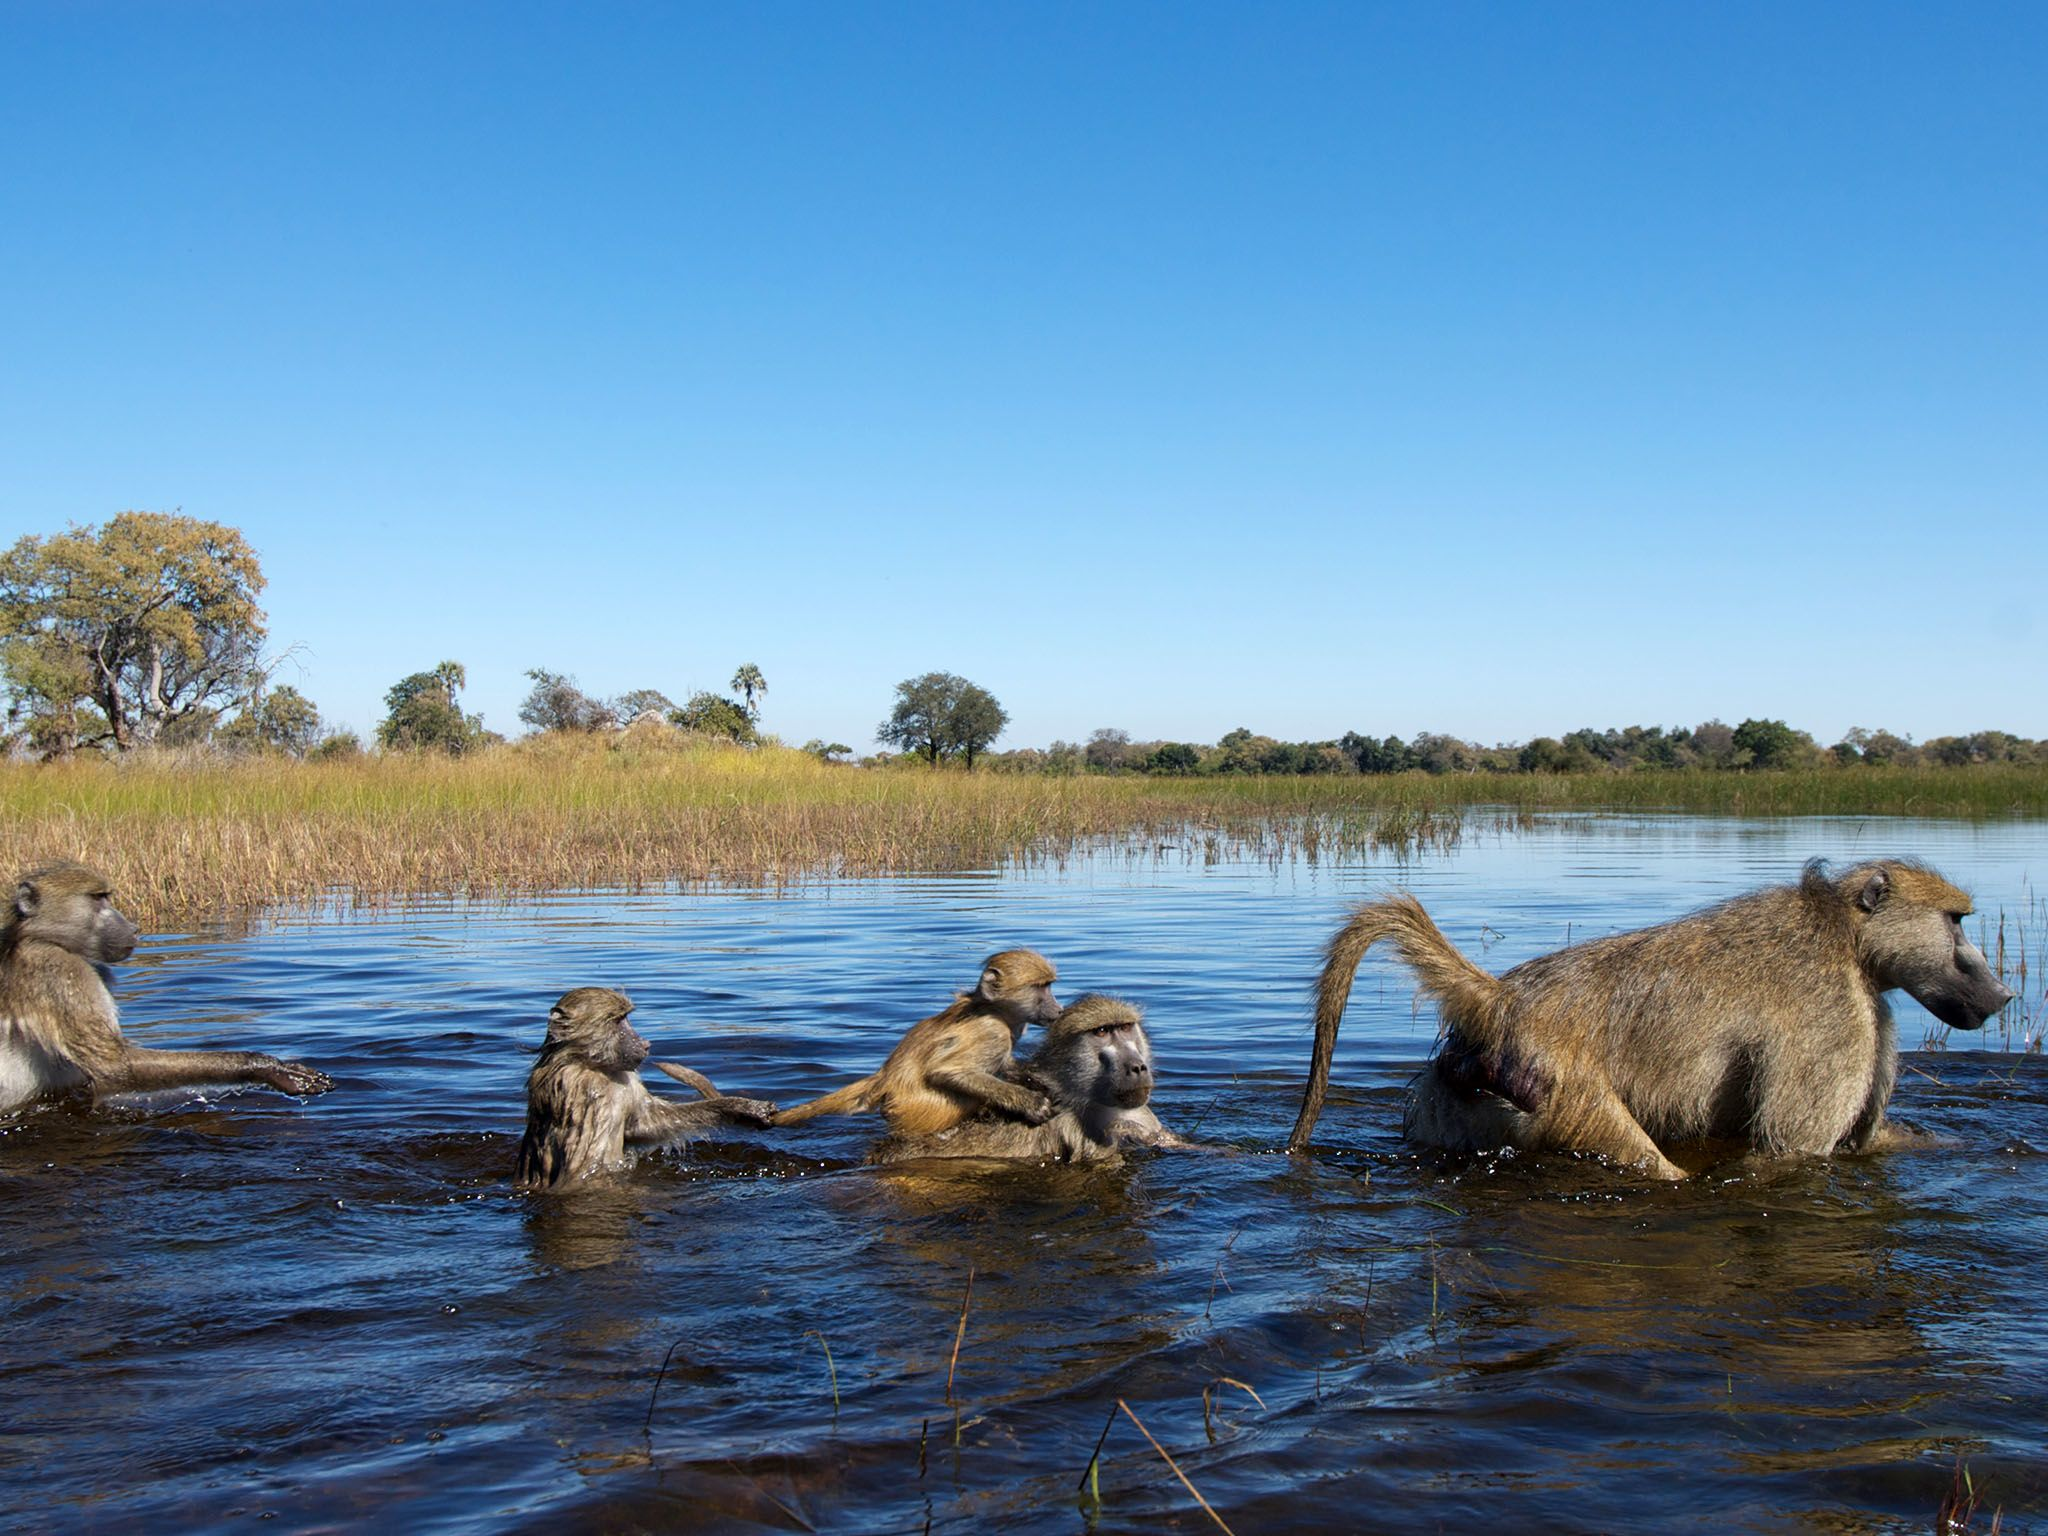 Moremi Game Reserve, Ngamiland, Botswana: A troop of chacma baboons crosses a flooded plain in... [Photo of the day - May 2016]